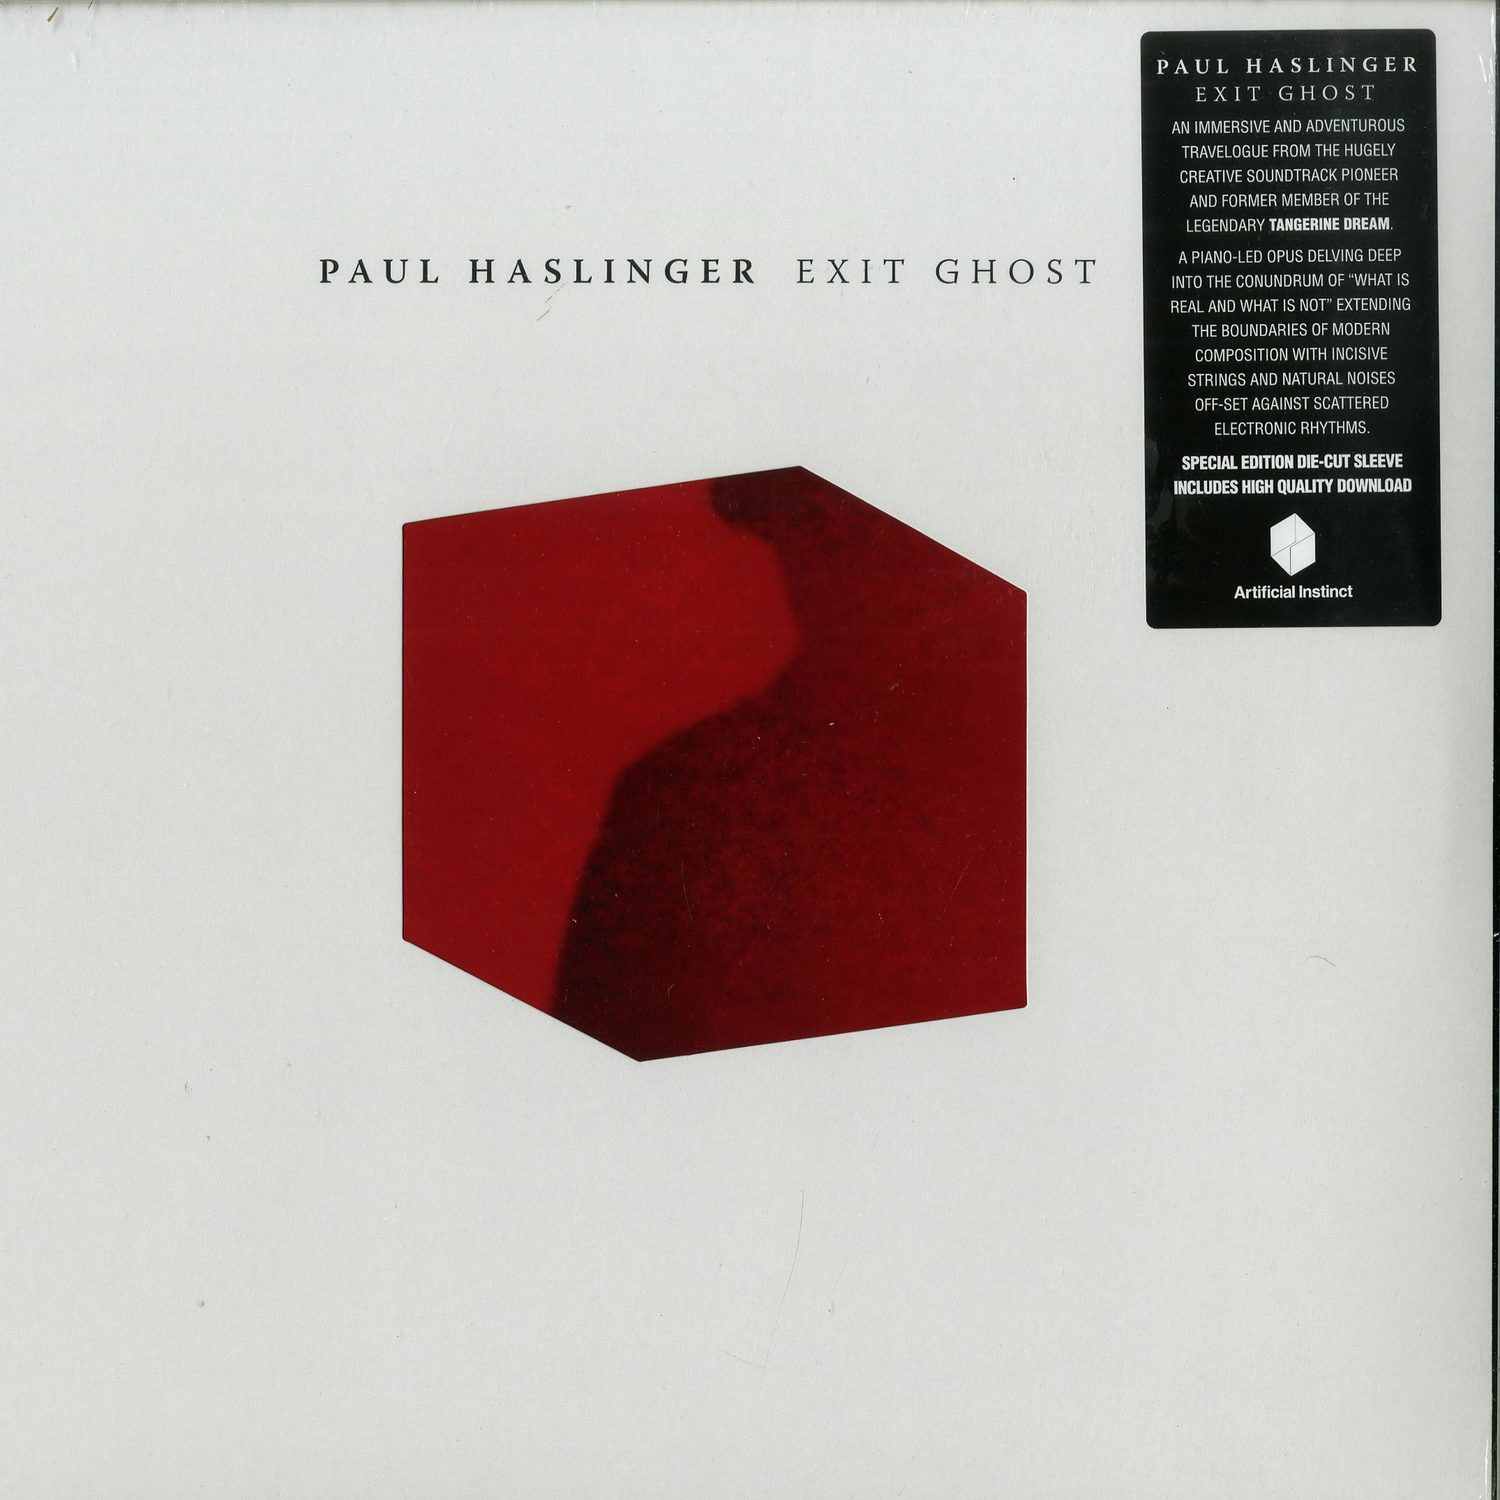 Paul Haslinger - EXIT GHOST